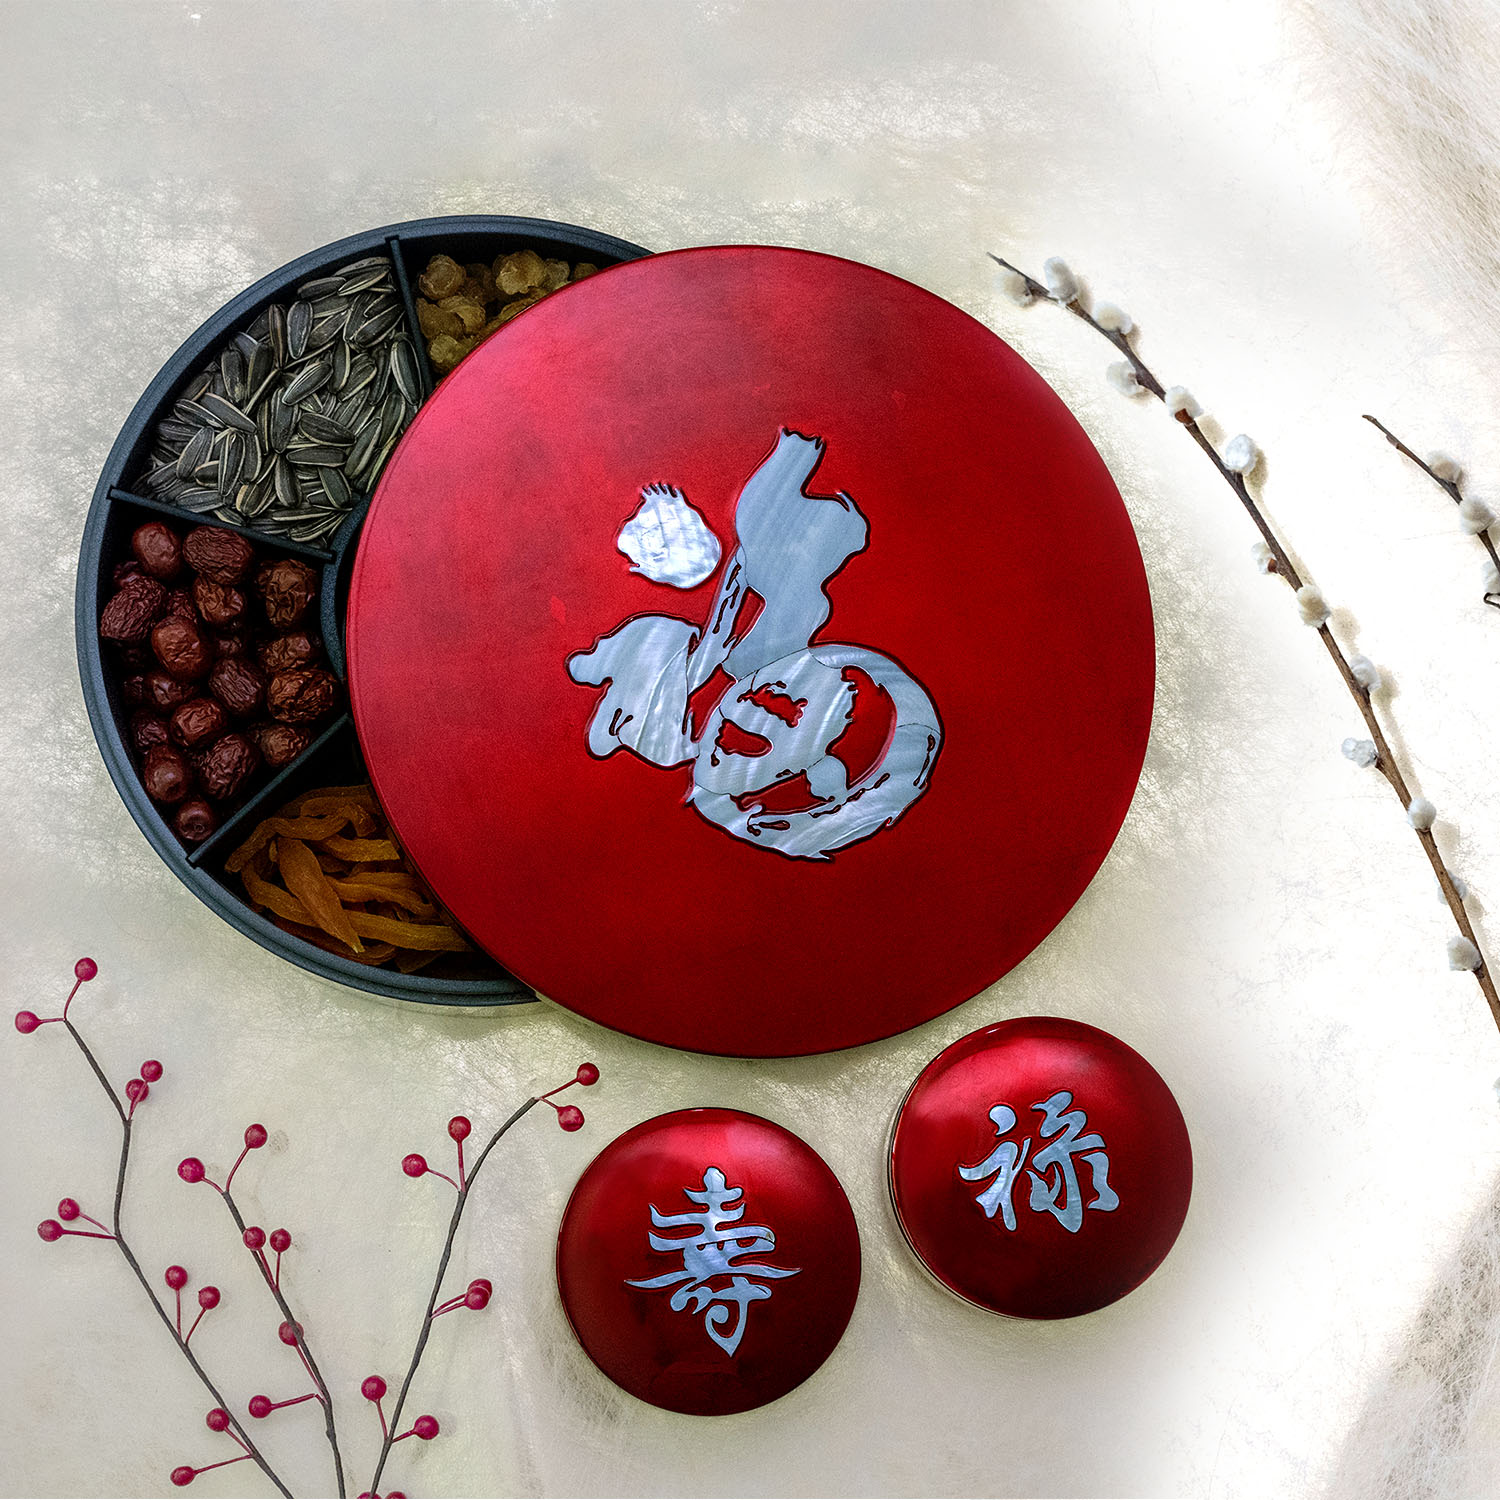 Eight Treasures Box inlaid with Fu (Prosperity) mother of pearl filled up auspicious new year goodies and snacks; also, Lu (wealth) and shou (longevity) on smaller trinket boxes